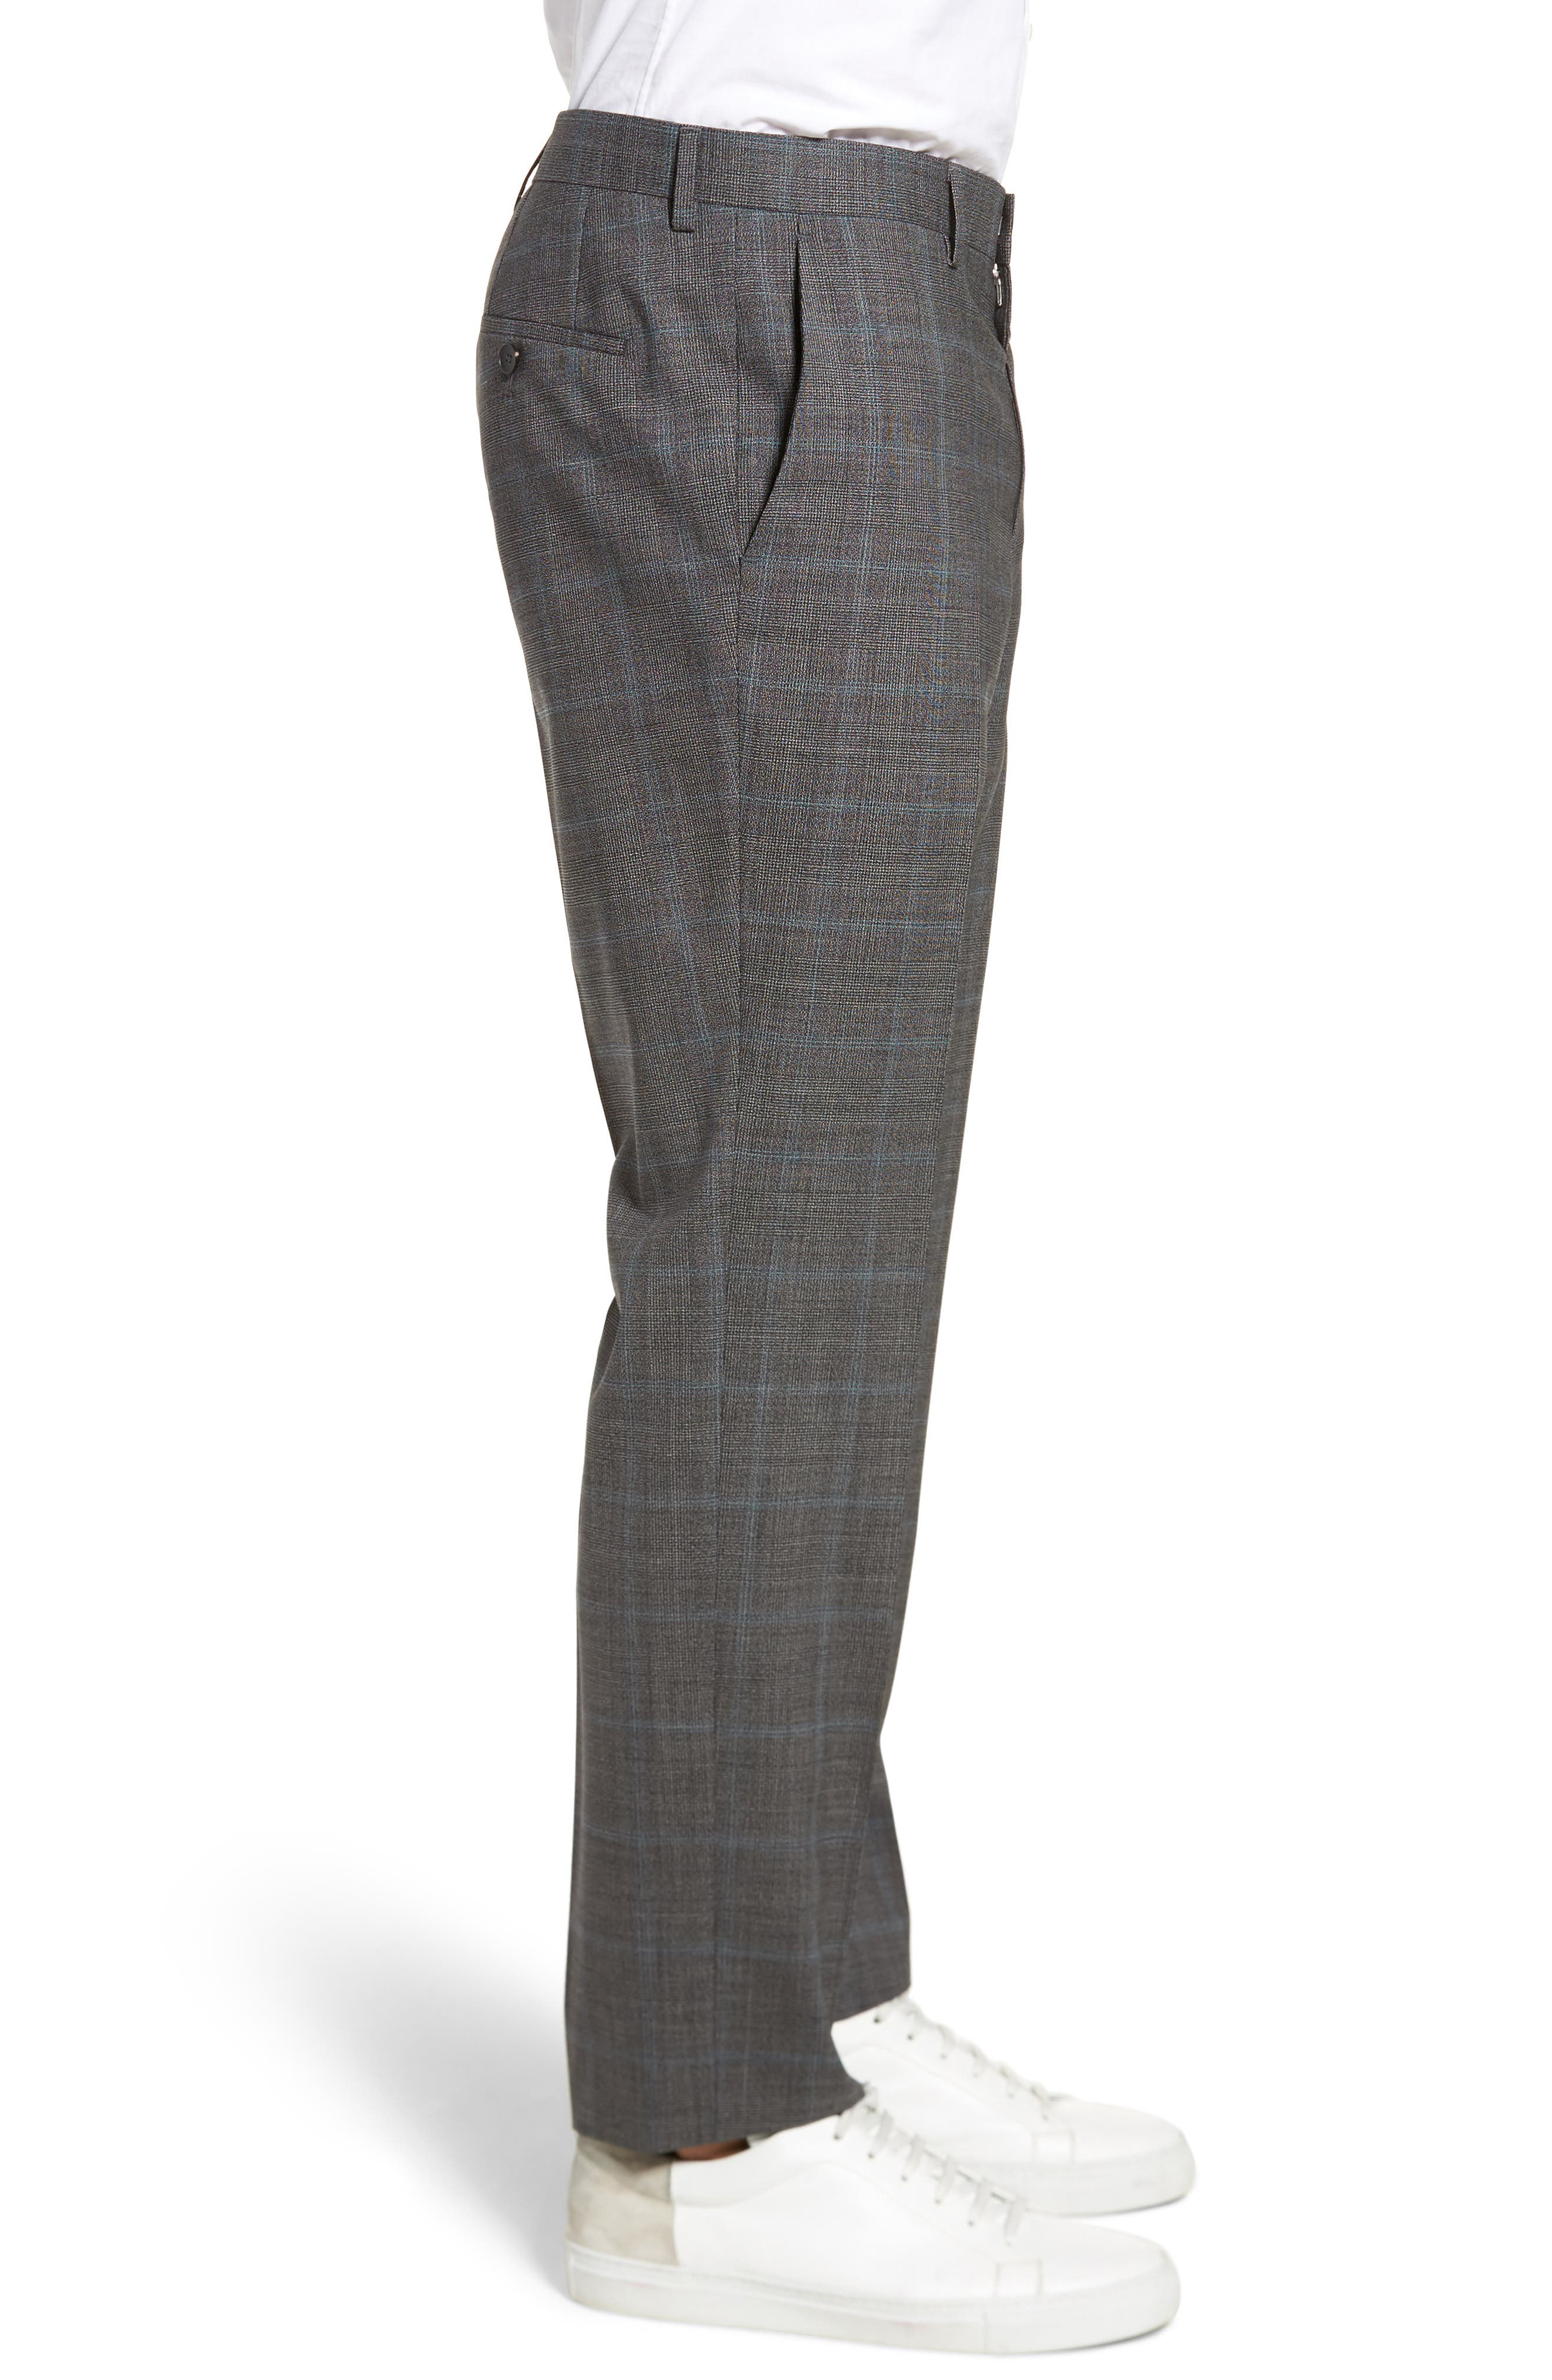 Genesis Flat Front Plaid Wool Trousers,                             Alternate thumbnail 3, color,                             Open Grey